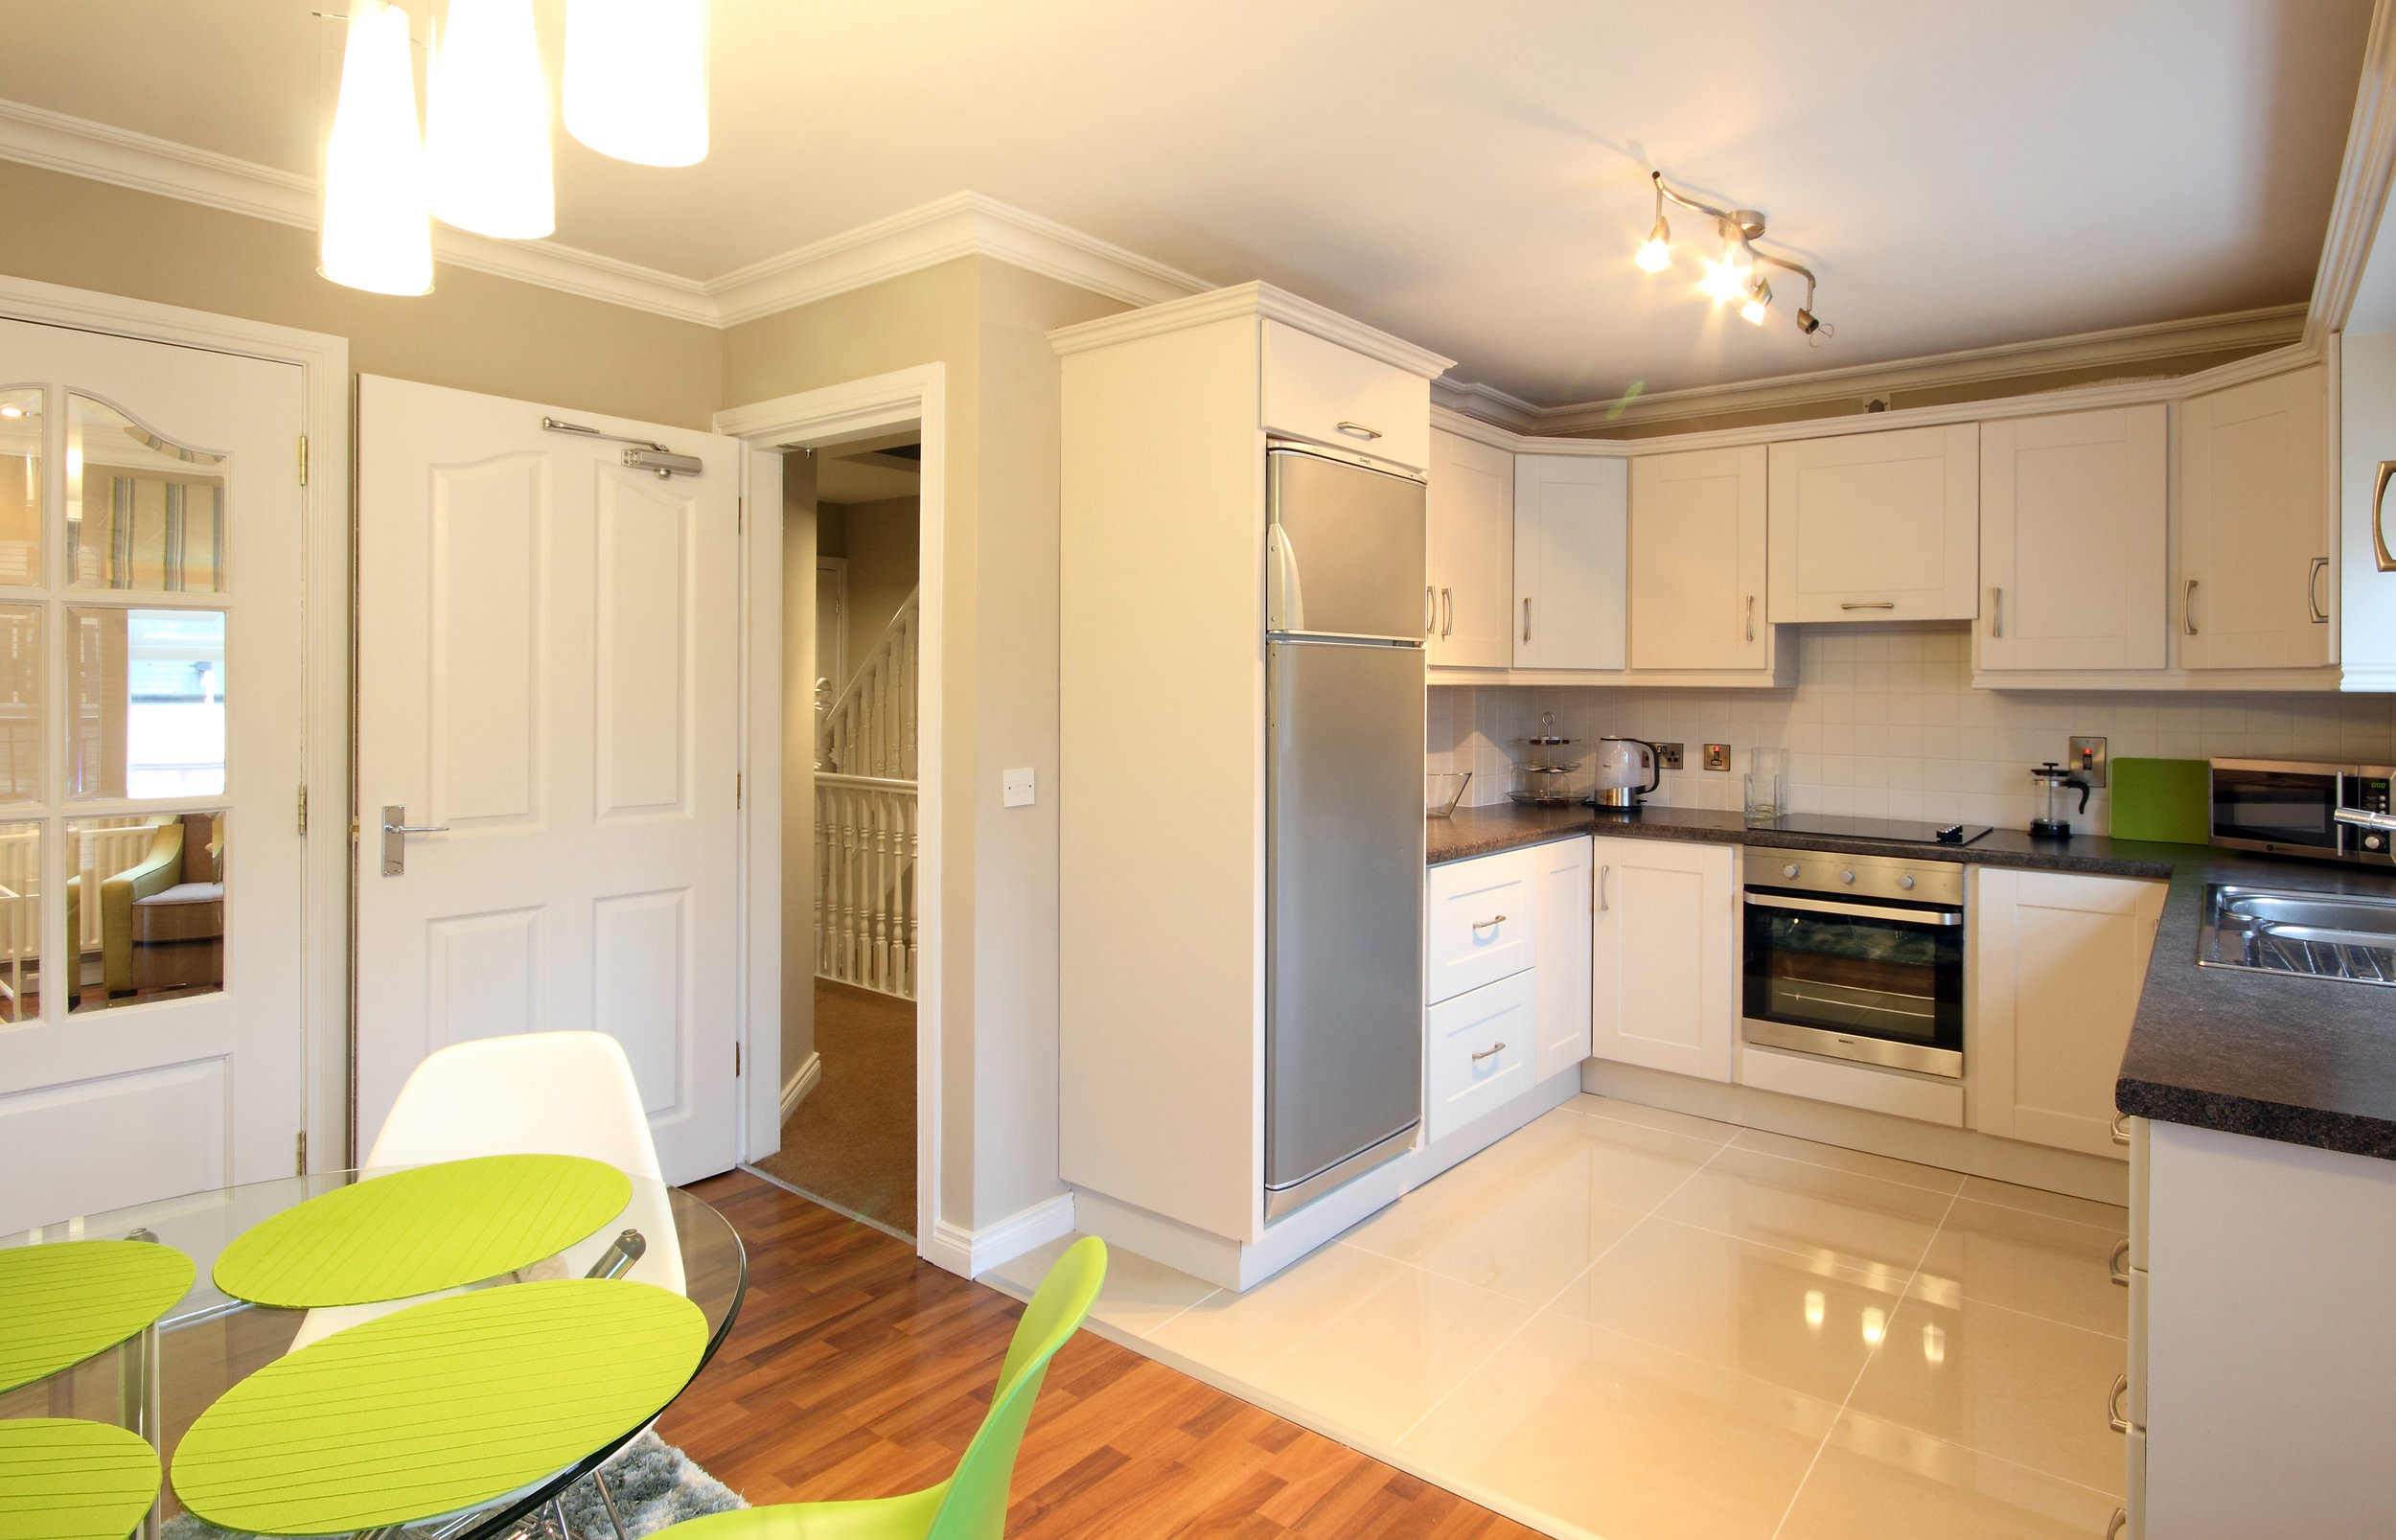 Self Catering Holiday Accommodation In Dungannon